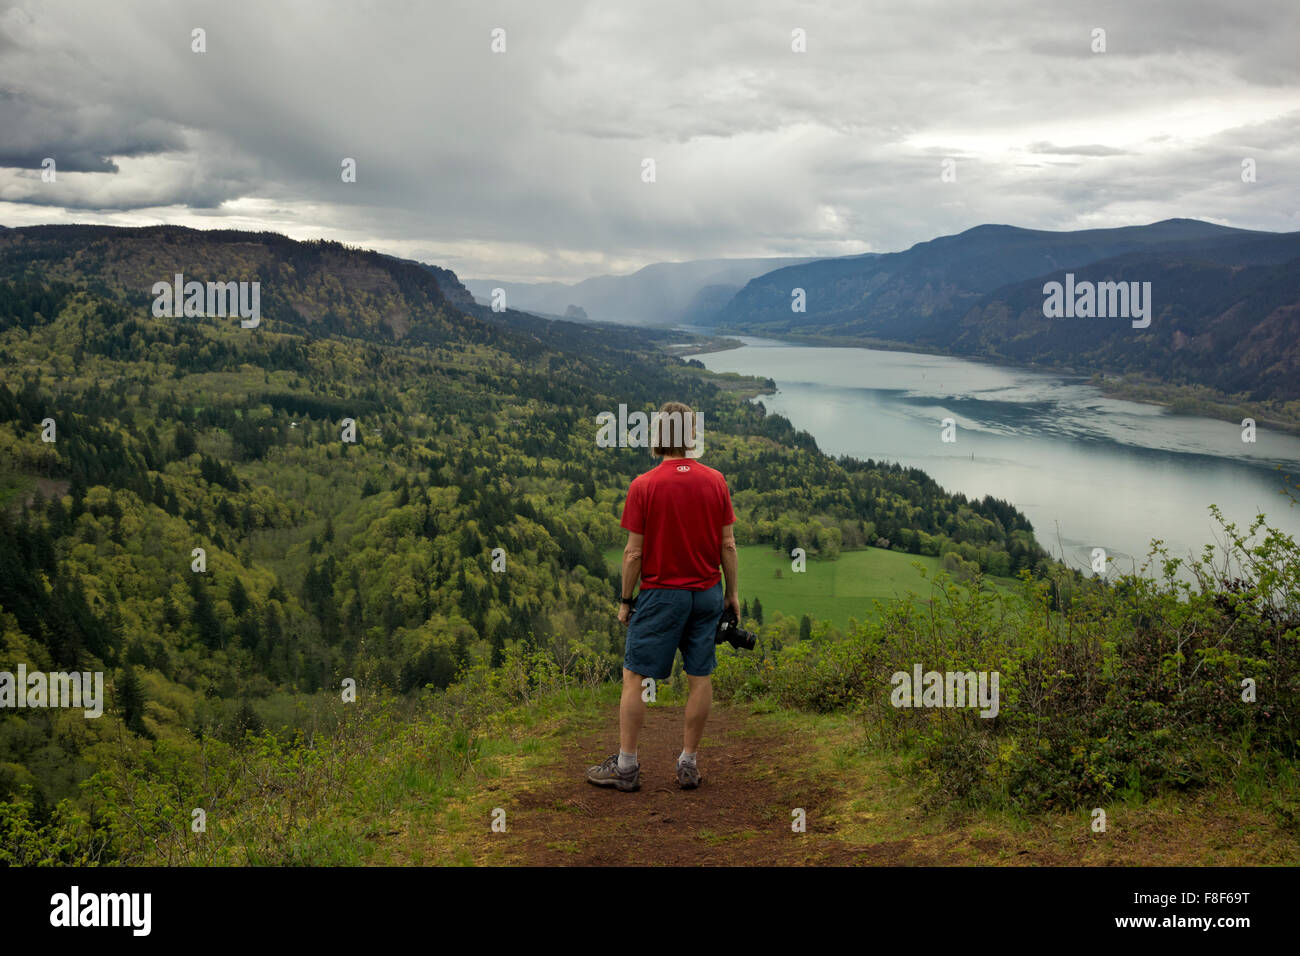 WA12255-00...WASHINGTON - Hiker overlooking the Columbia River Gorge from the Nancy Russel Overlook on the Cape - Stock Image